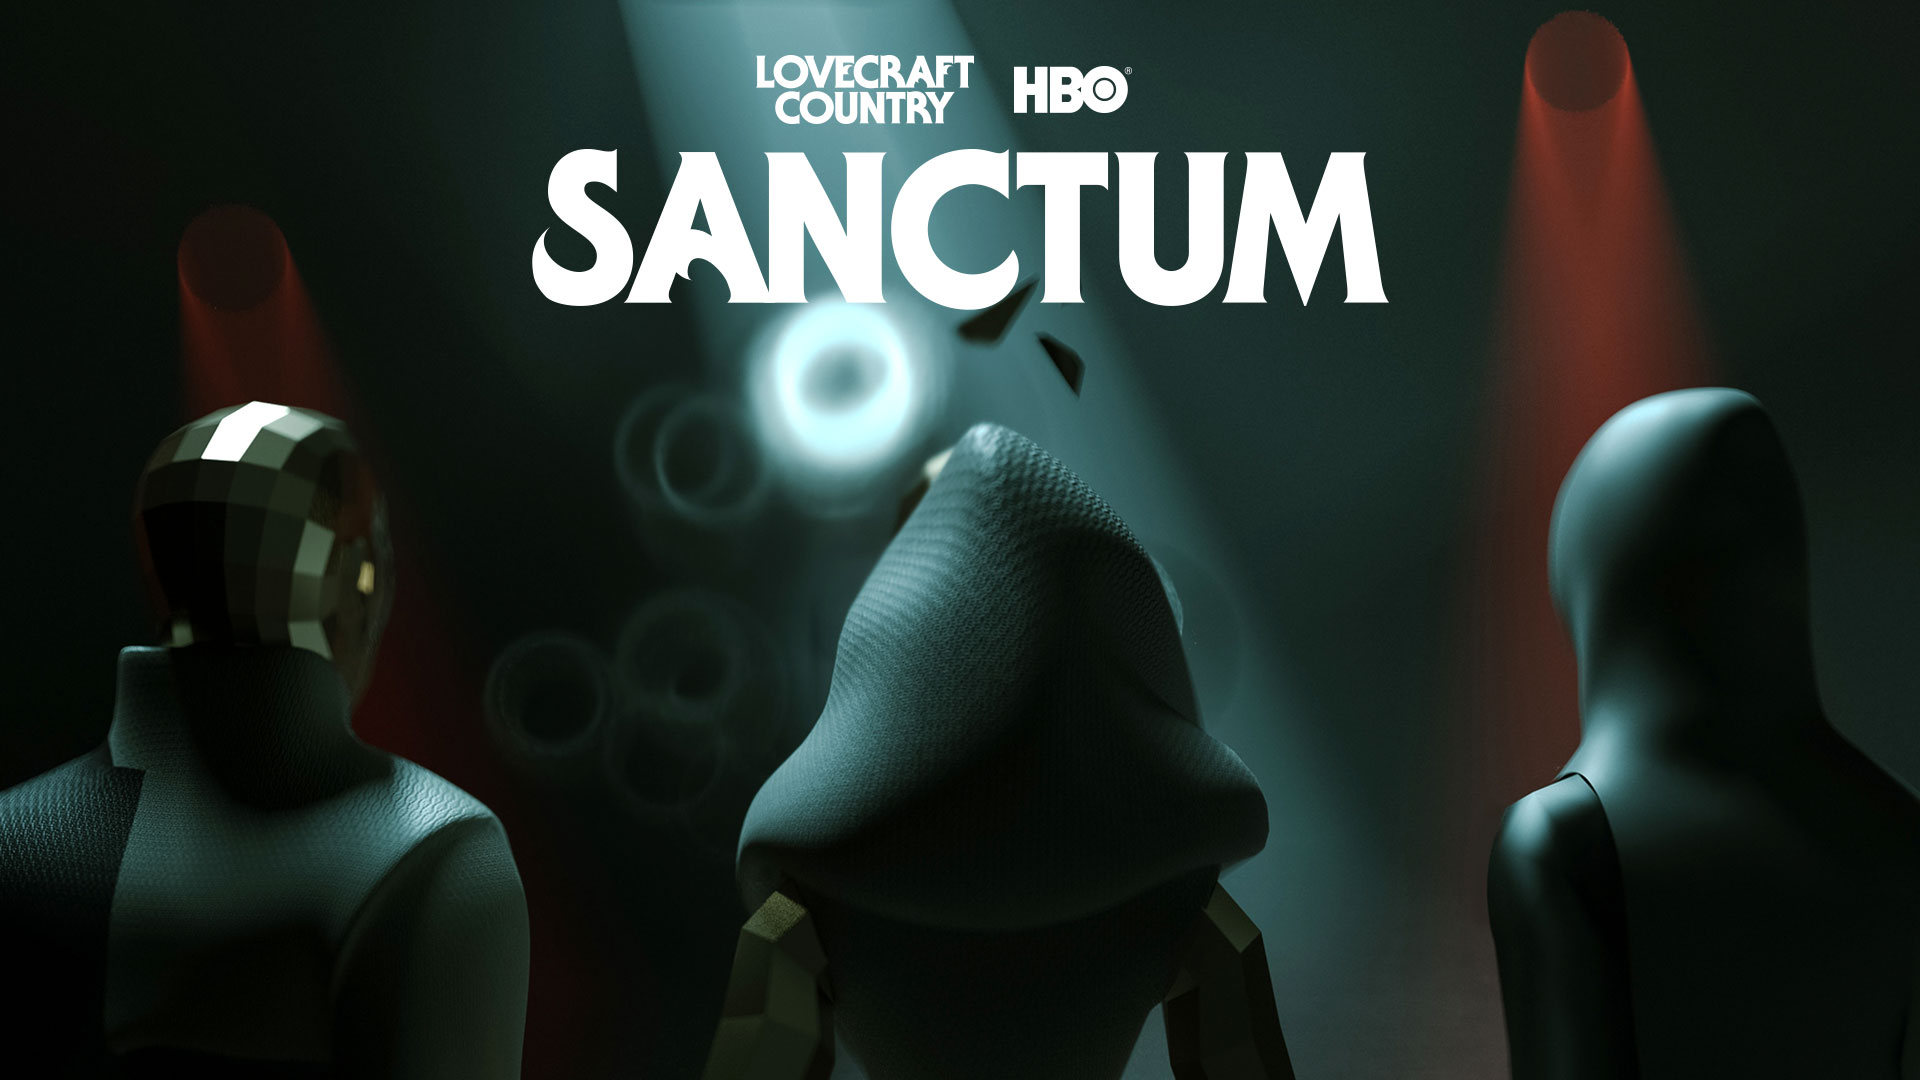 Lovecraft Country - Sanctum. Three people. Two in animated white hoods and one a disco ball like helmet